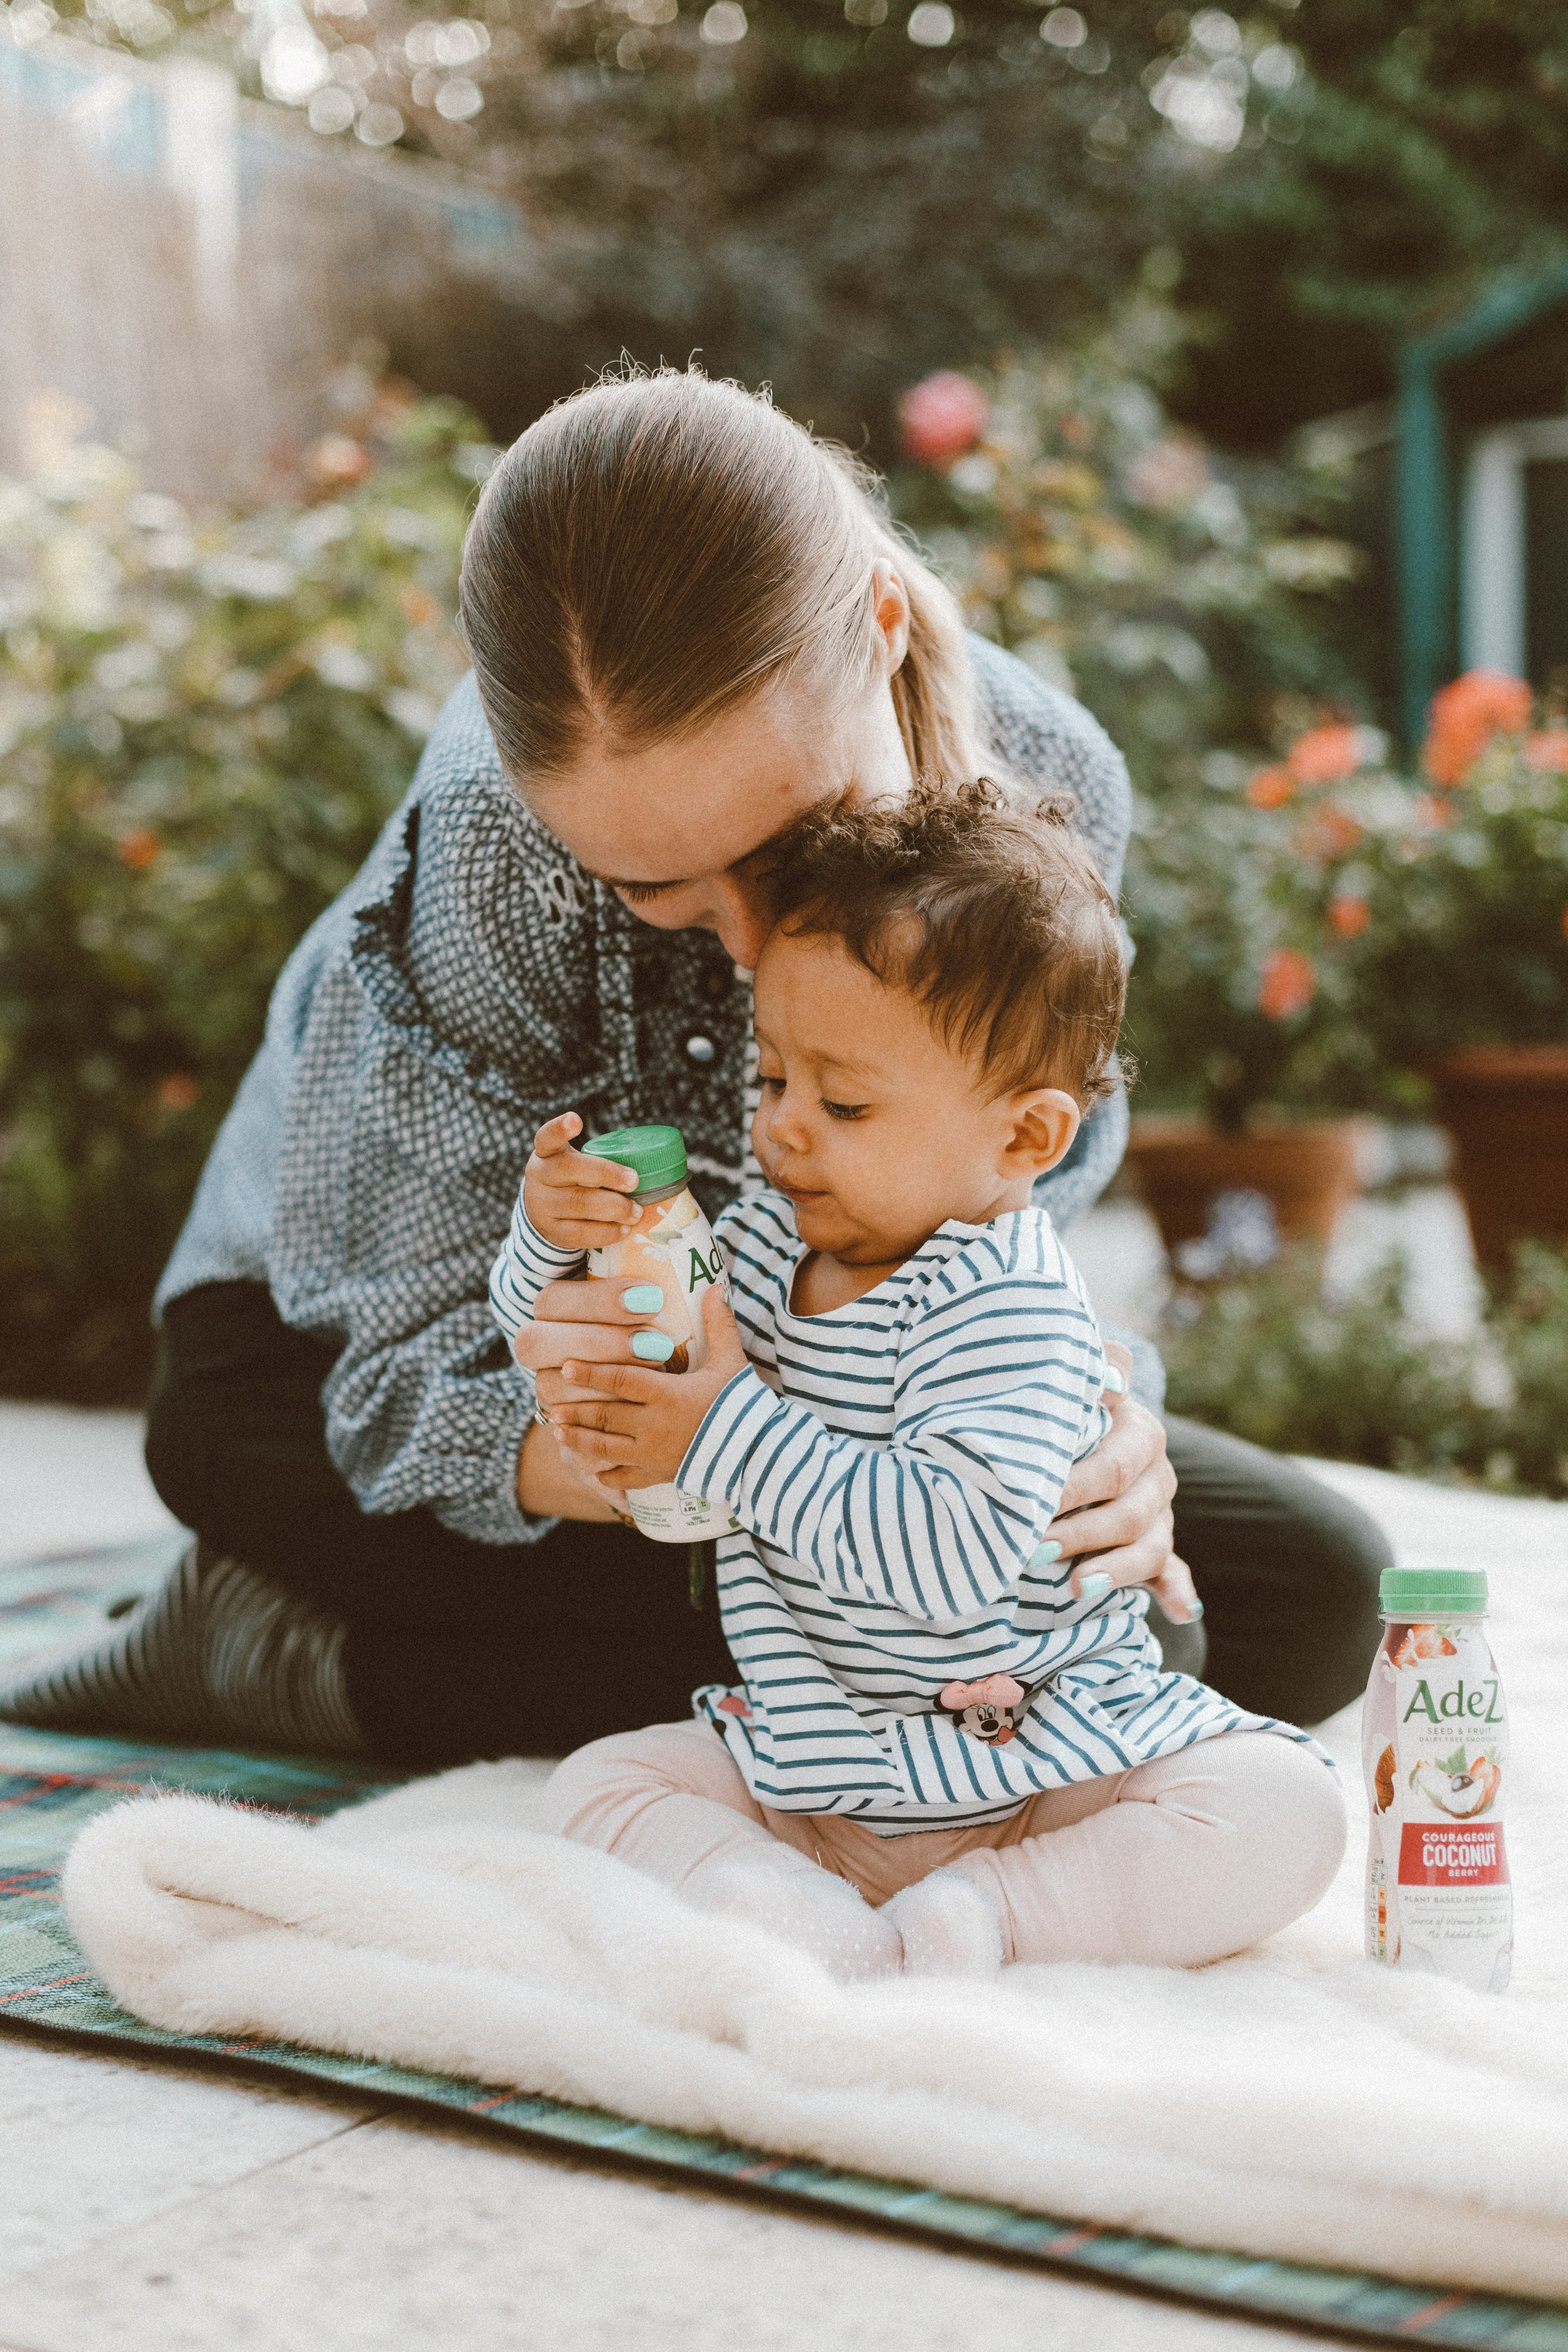 - The study noted frequent chatting with toddlers accounted for up to 27 percent of their higher performance in verbal comprehension a decade later.